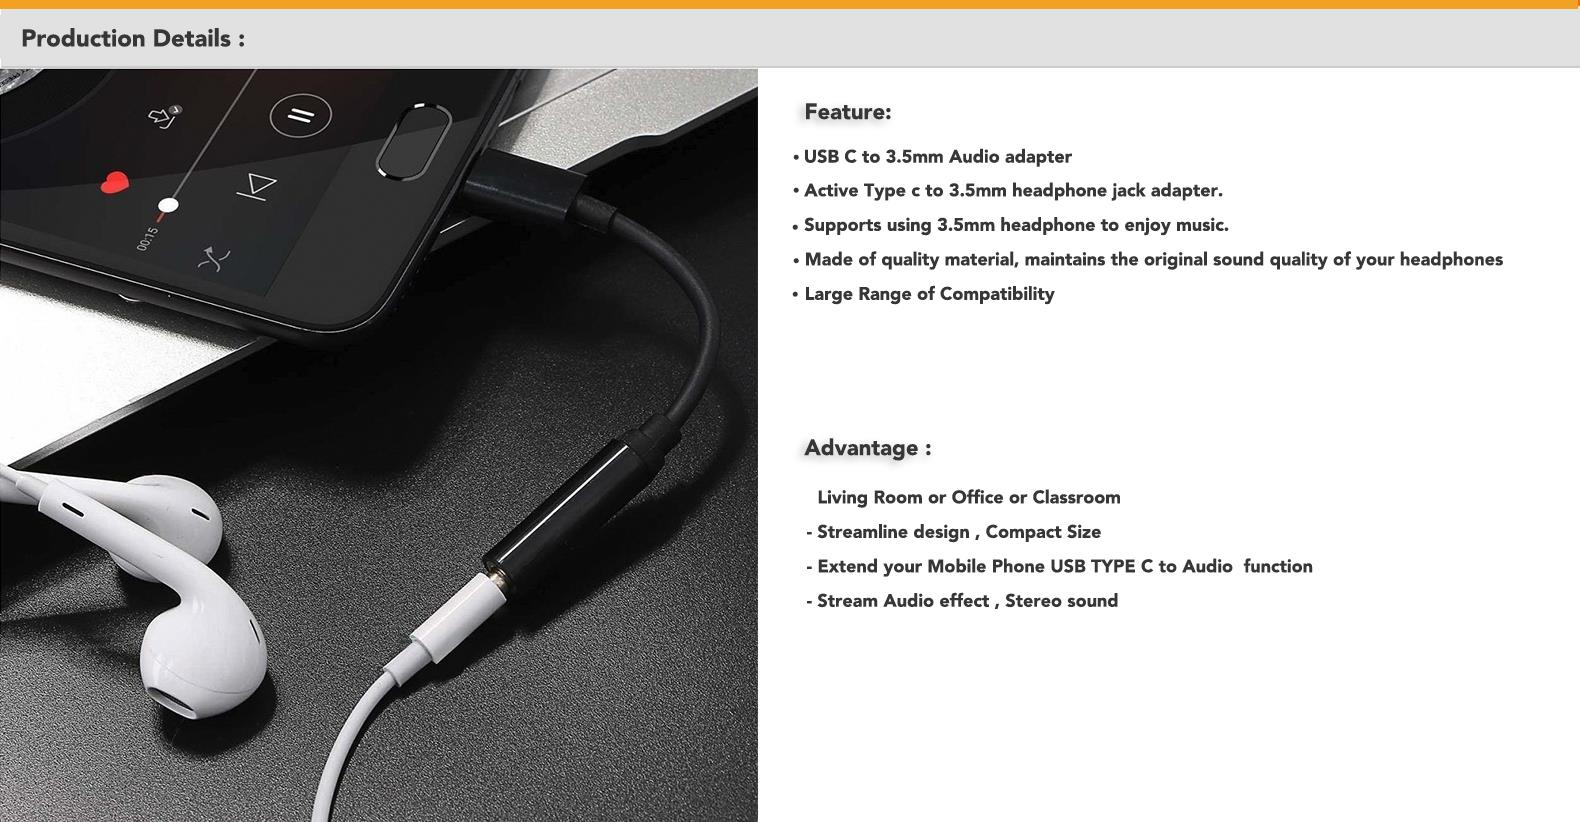 hight resolution of type c to 3 5mm headphone jack adapter supports using 3 5mm headphone to enjoy music this adapter supports you connect devices to listening music that use